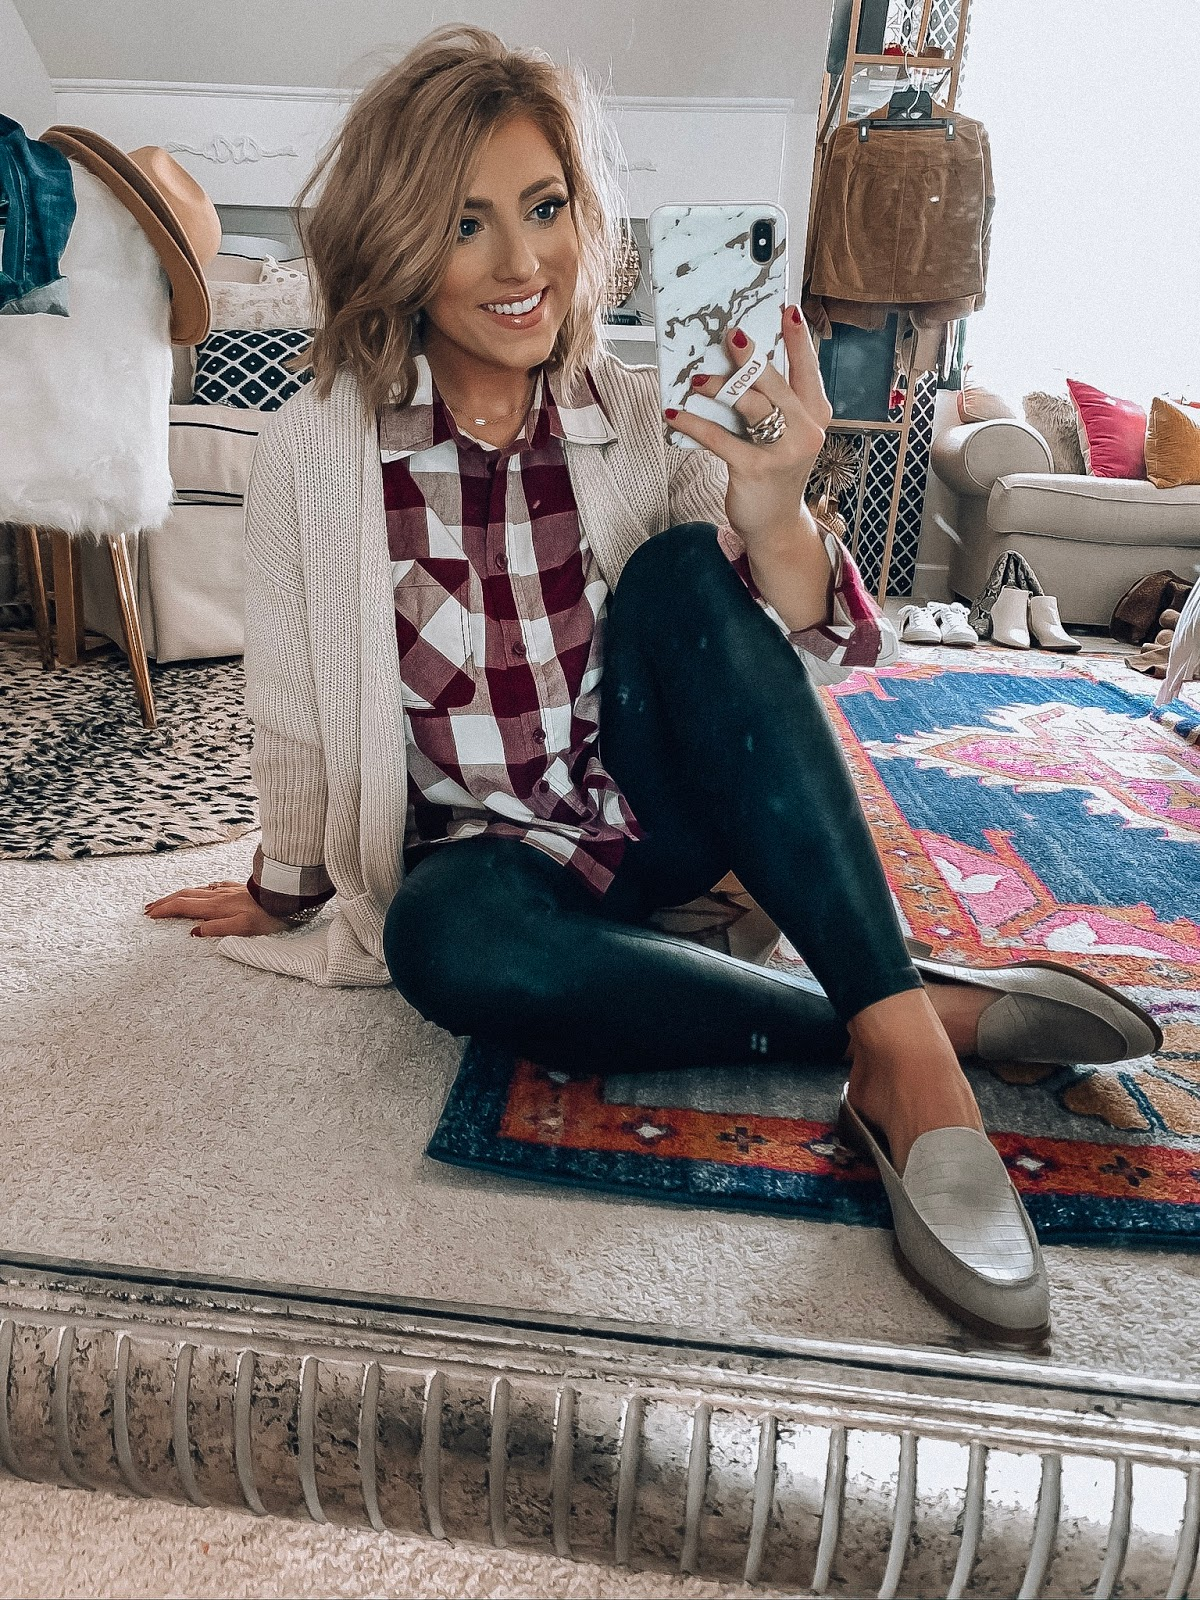 Affordable Fall Outfits: Recent Walmart (+ A Few Target and Amazon) Finds - Something Delightful Blog #fall2020 #fallfashion #falloutfits #casualstyle #everydayoutfits #walmartfashion #targetstyle